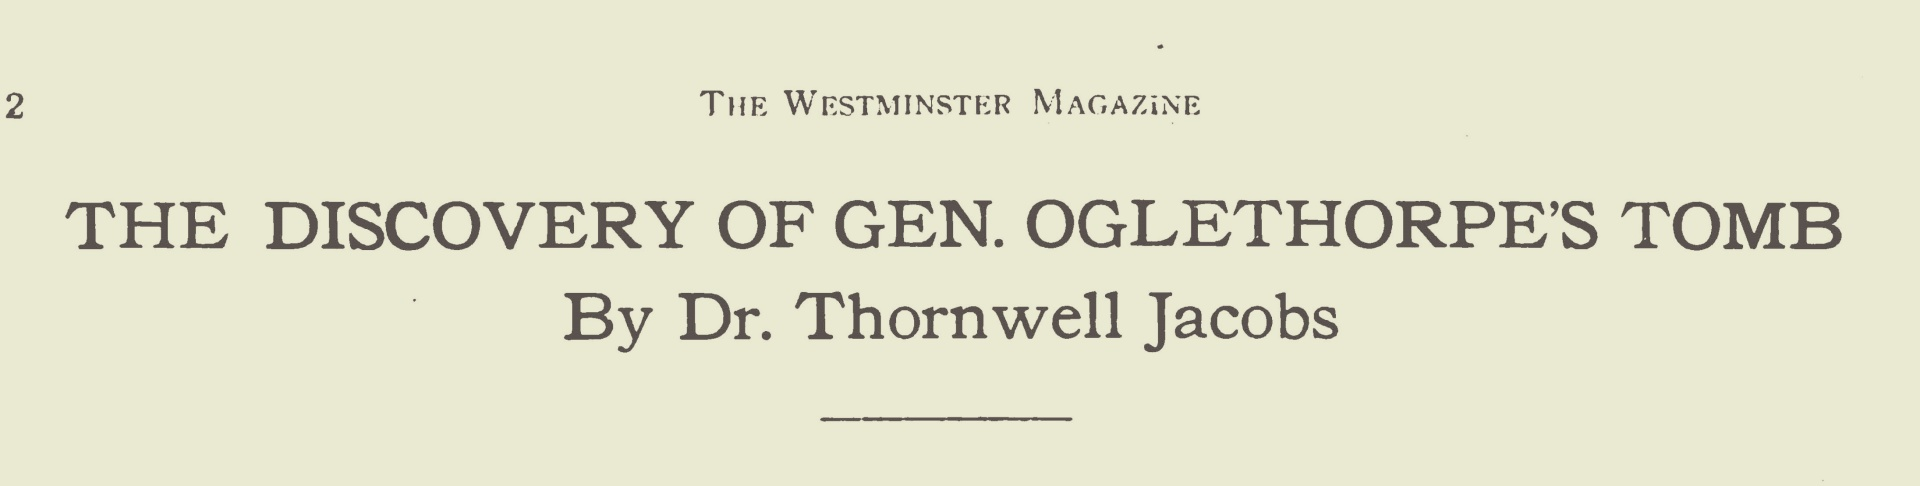 Jacobs, Thornwell, The Discovery of Gen. Oglethorpe's Tomb Title Page.jpg